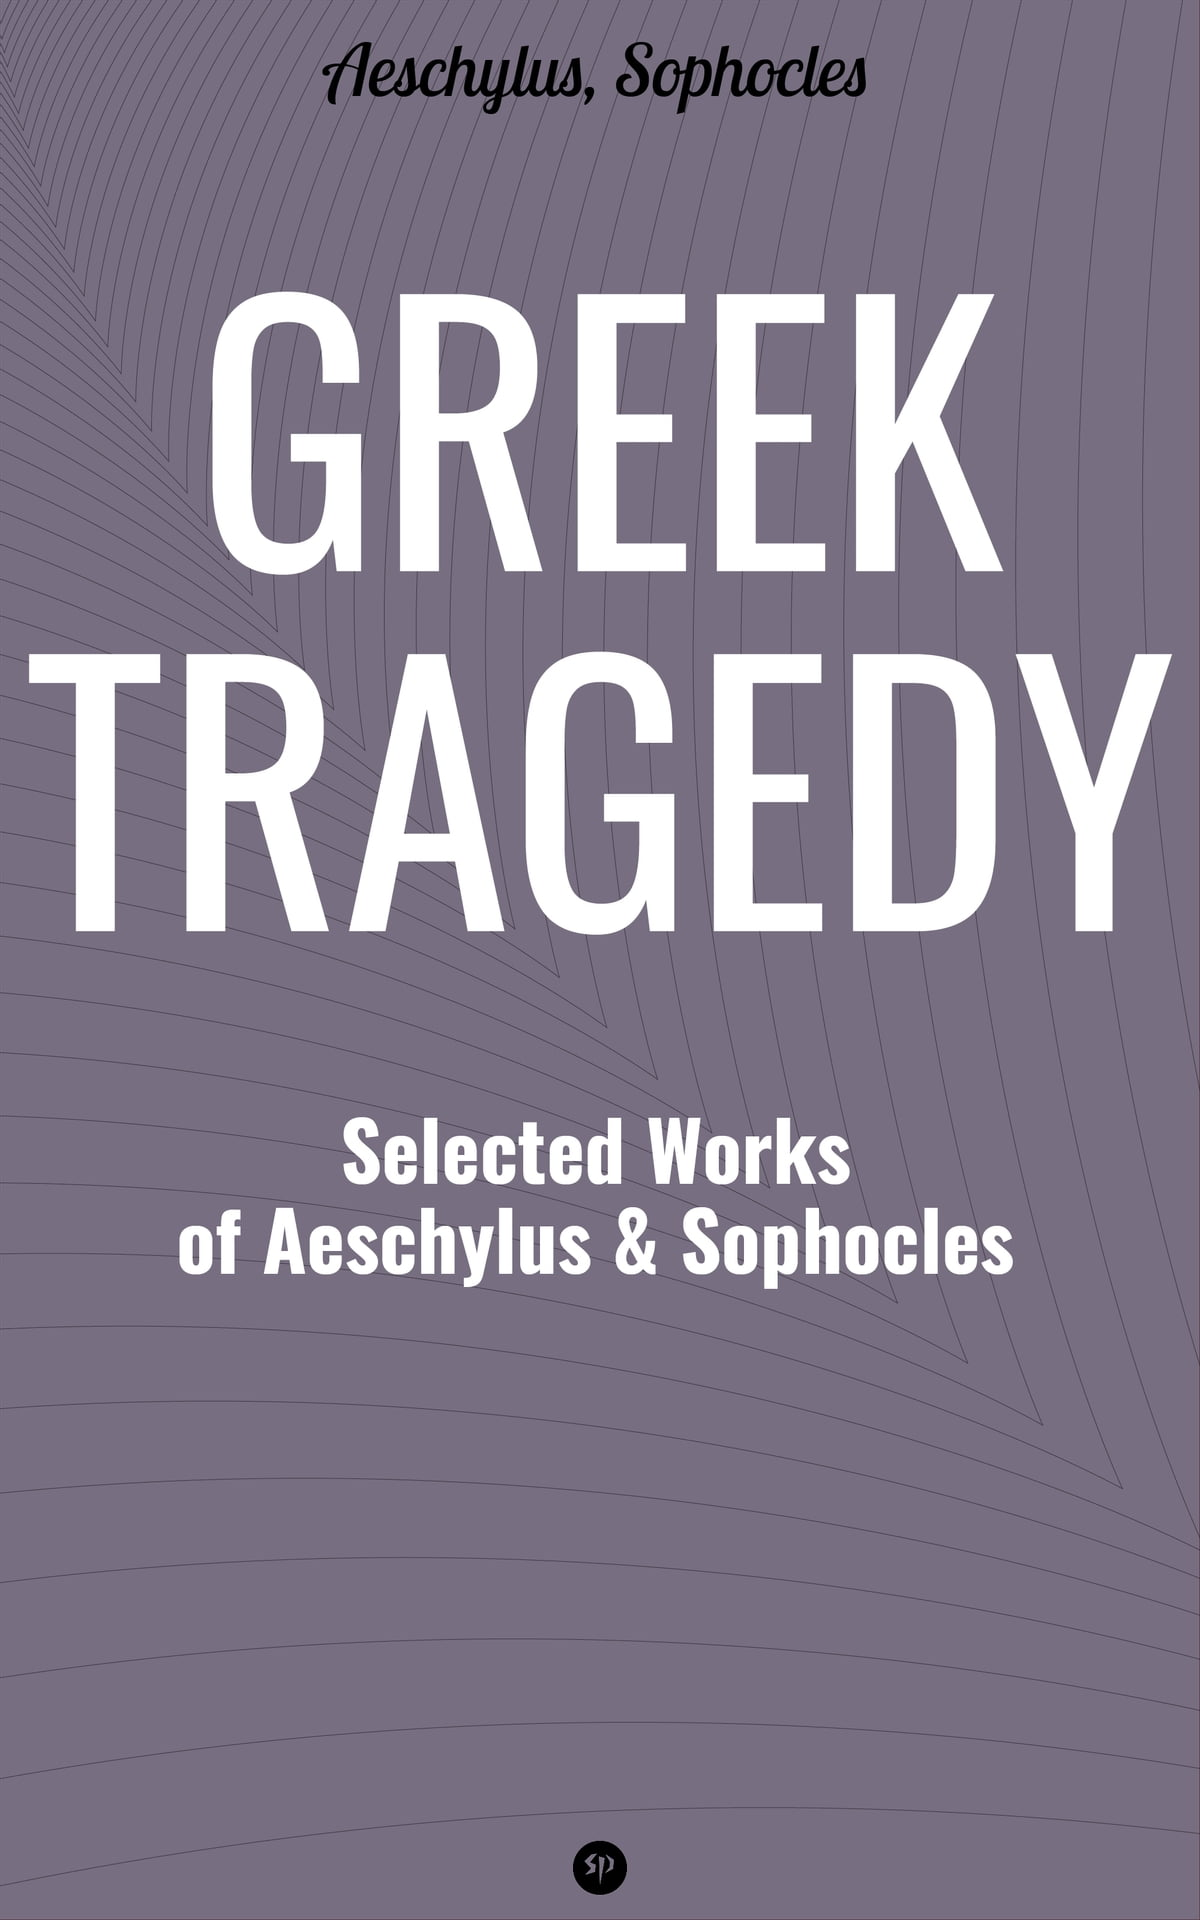 Greek Tragedy: Selected Works of Aeschylus and Sophocles eBook by Aeschylus  - 9788027239665 | Rakuten Kobo